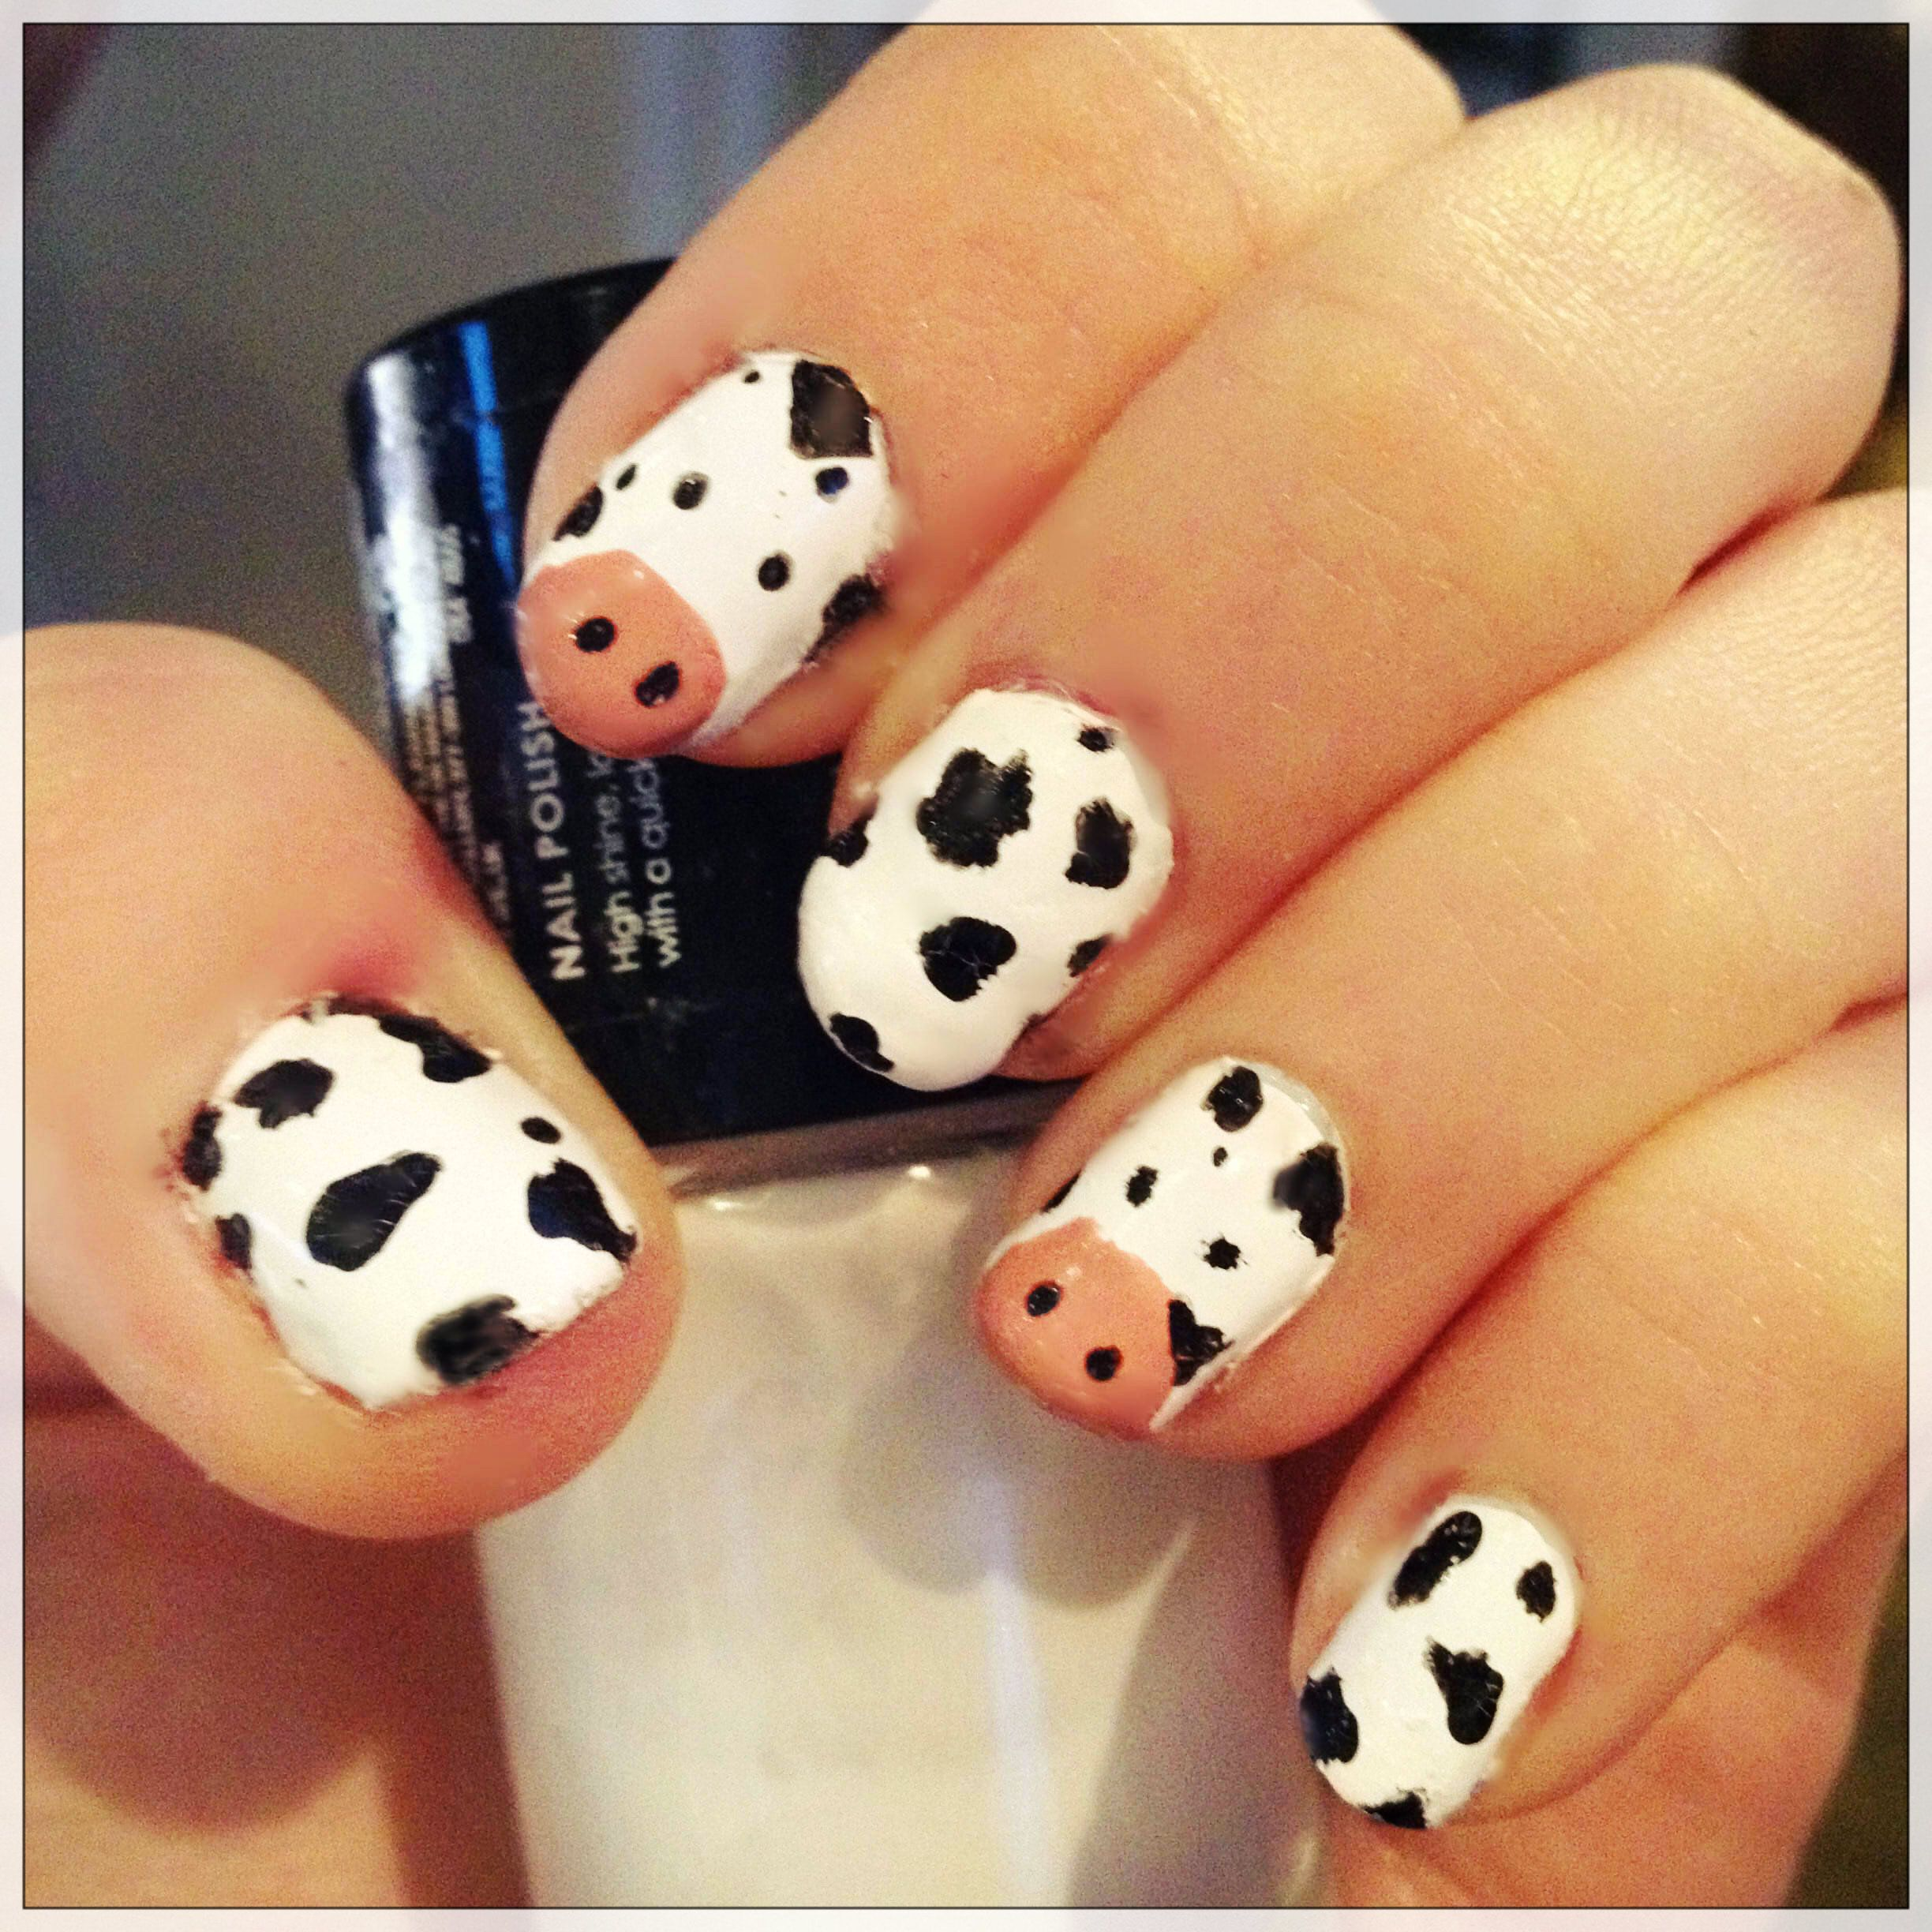 Funny Cow Nail Art Design